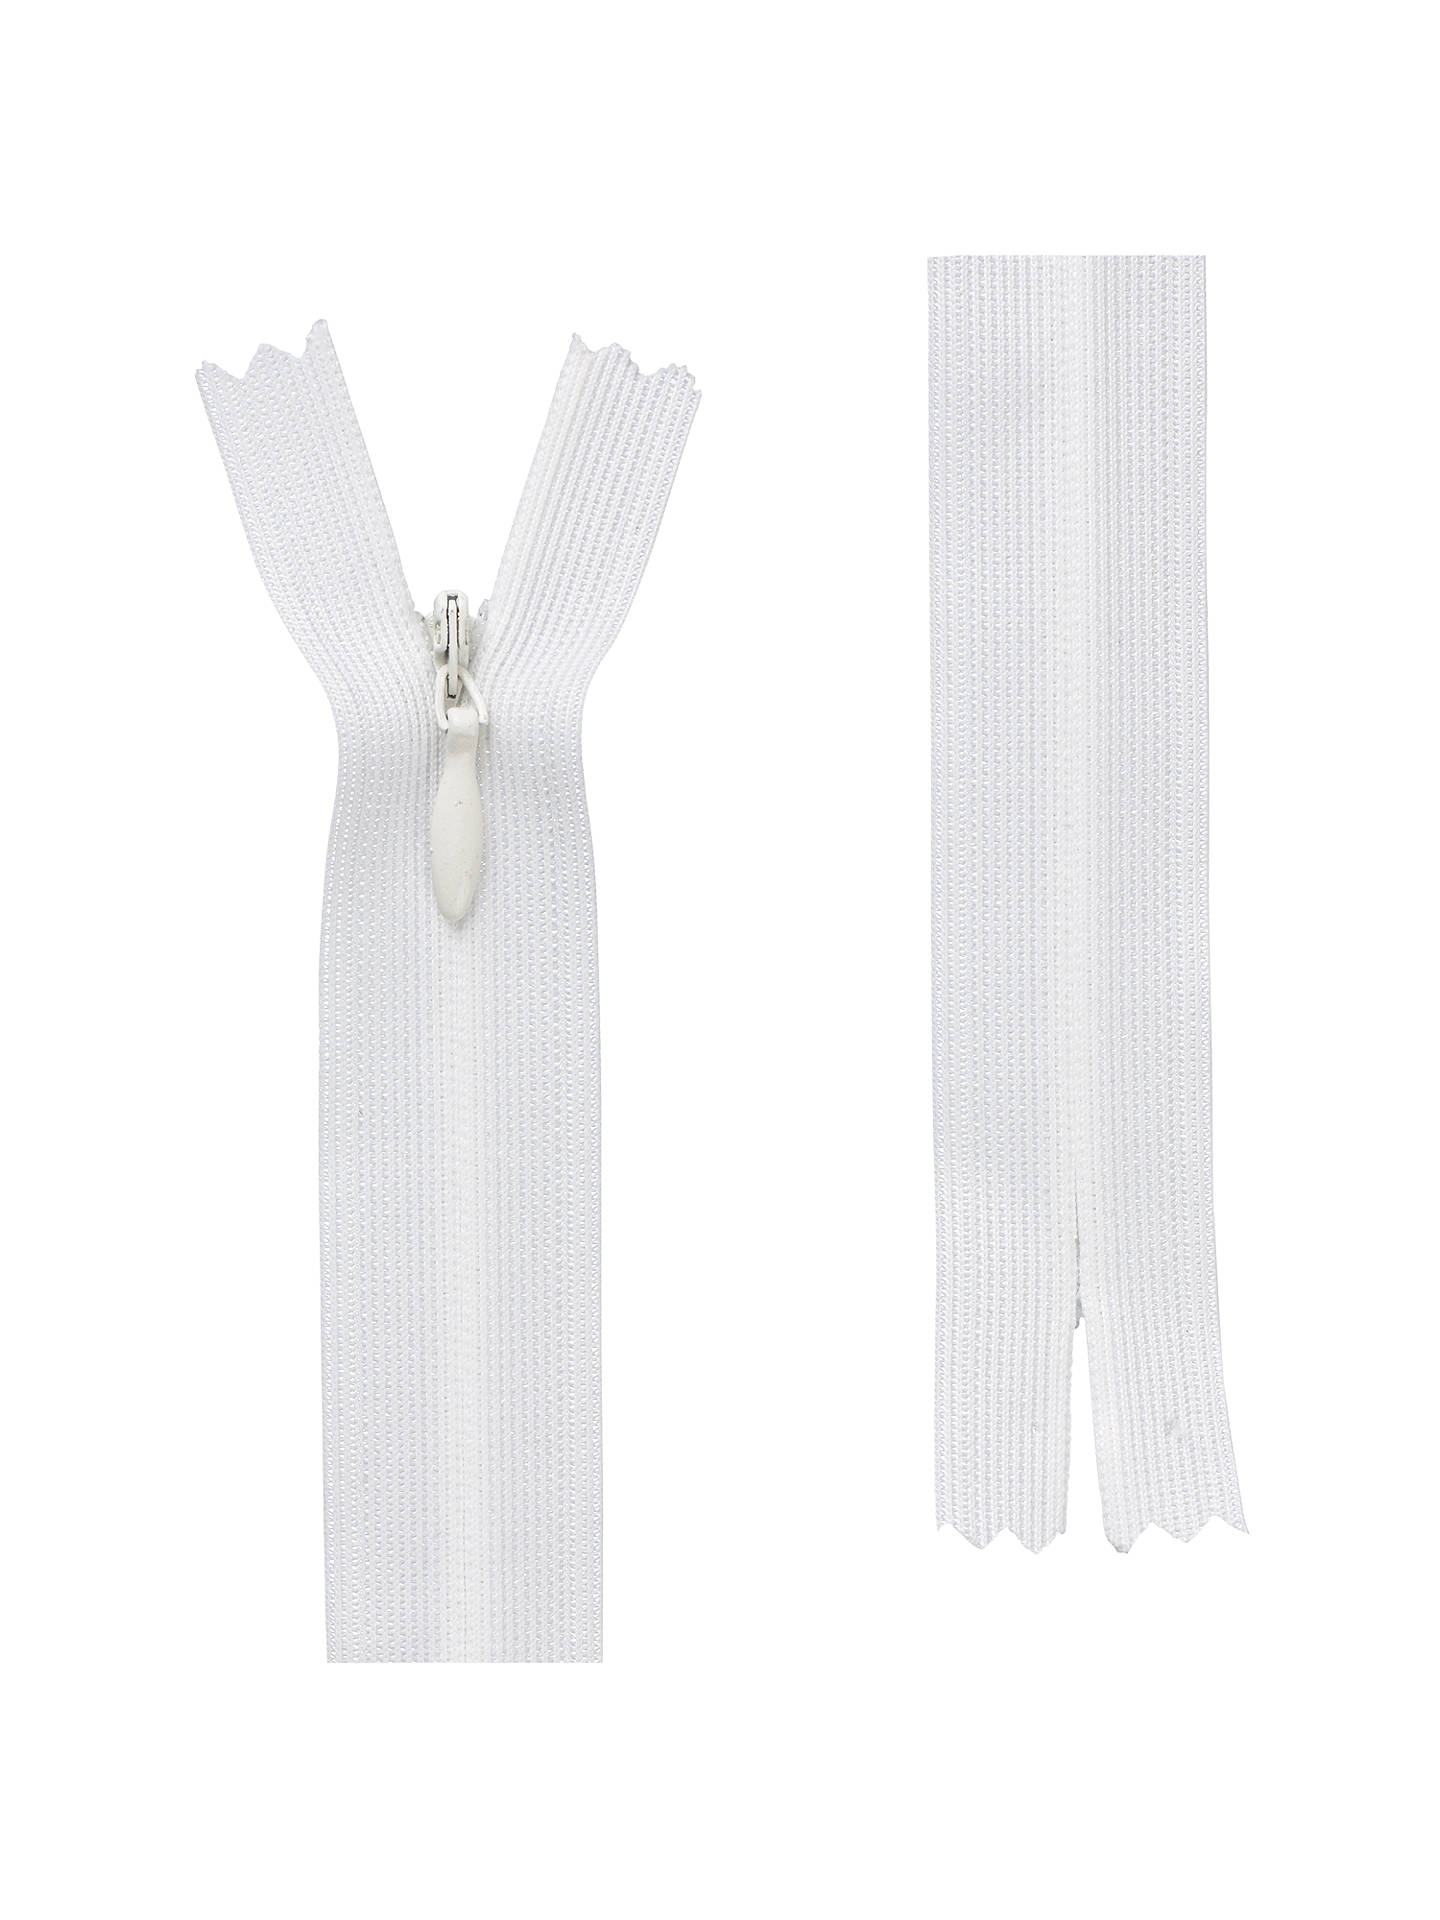 BuyOpti Closed End General Purpose Light Fabric Concealed Zip, Off White, 20cm Online at johnlewis.com